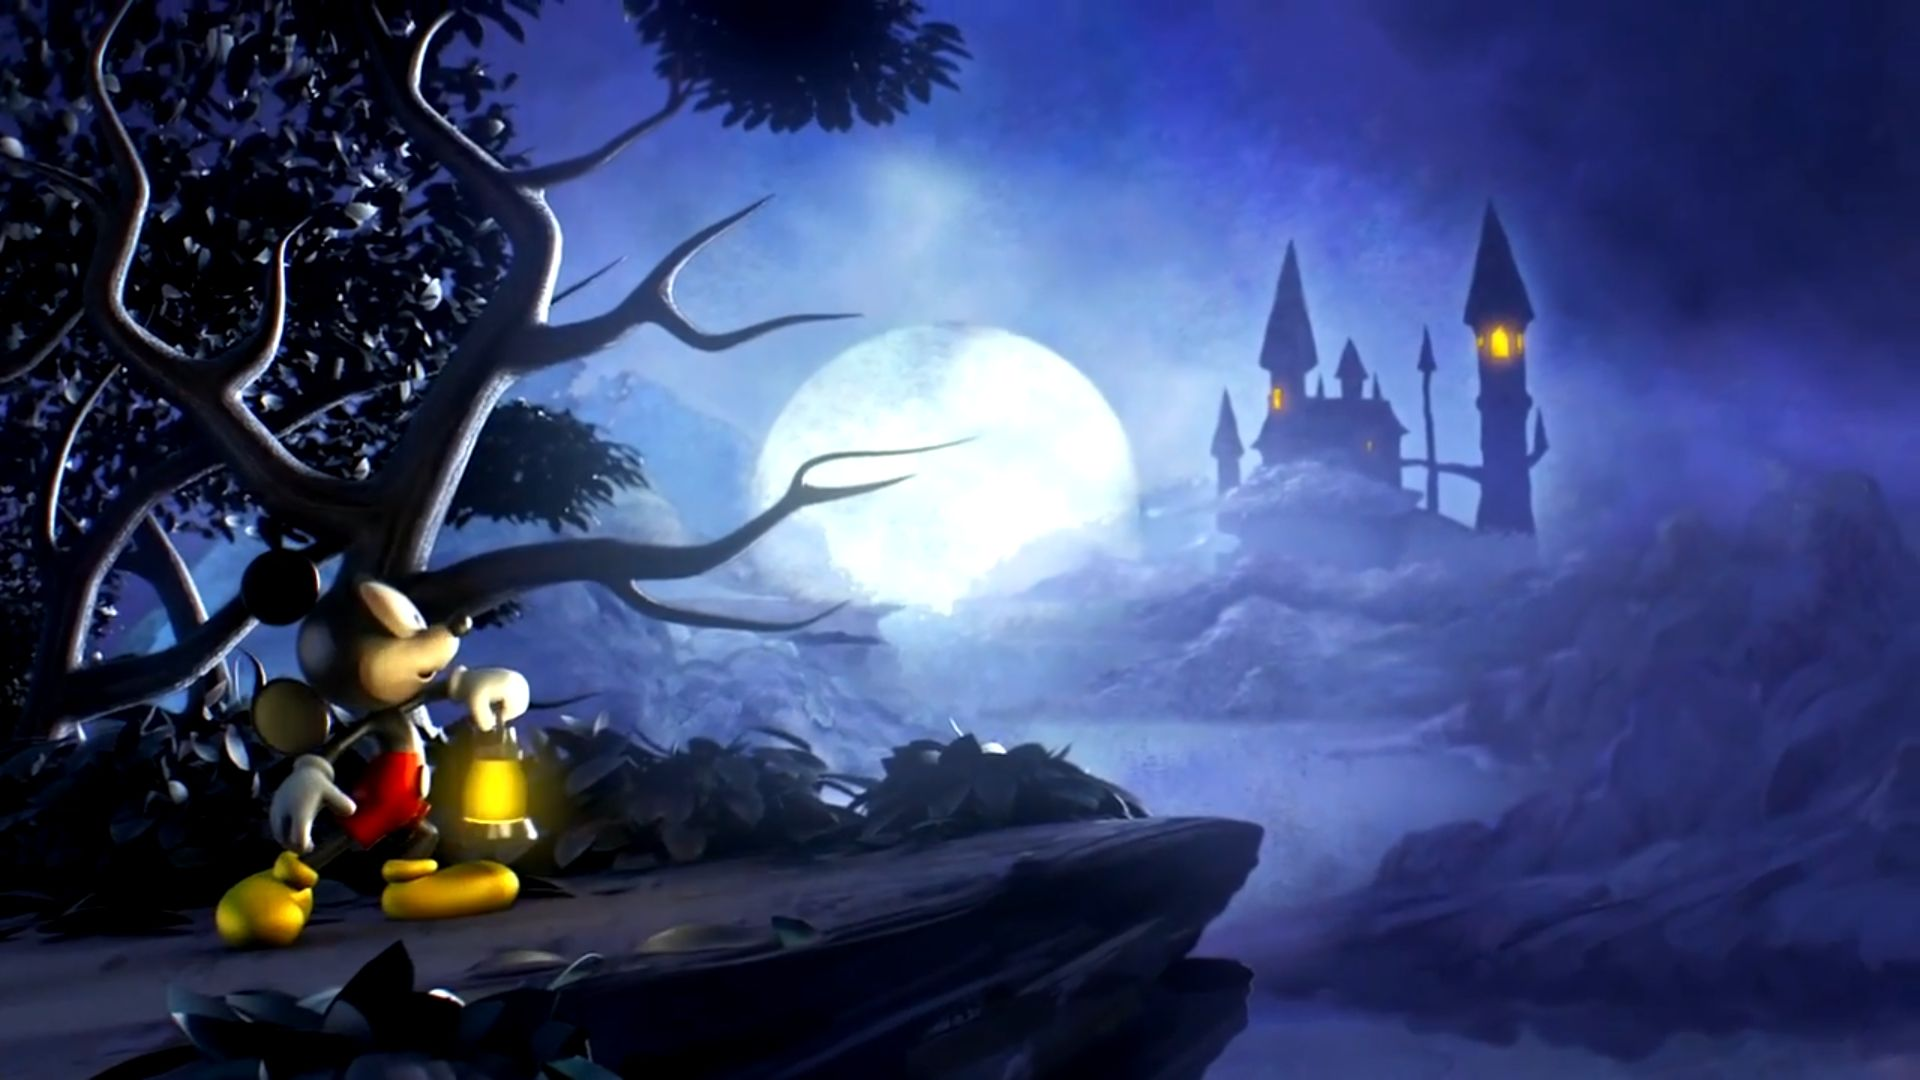 Fall Scene Wallpaper For Iphone Castle Of Illusion Starring Mickey Mouse Trailer D